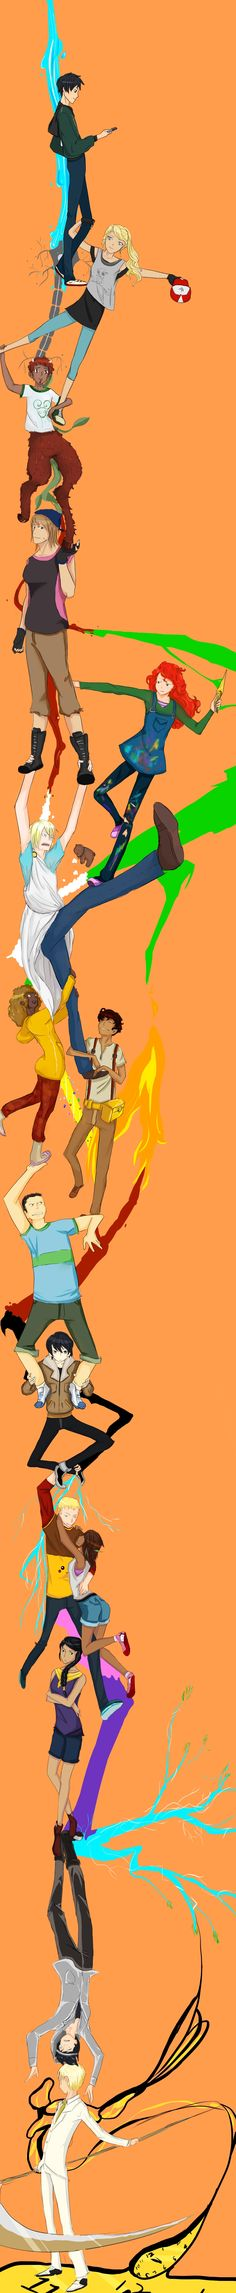 'Percy Jackson and The Olympians' and 'The Heroes of Olympus' . Durarara style